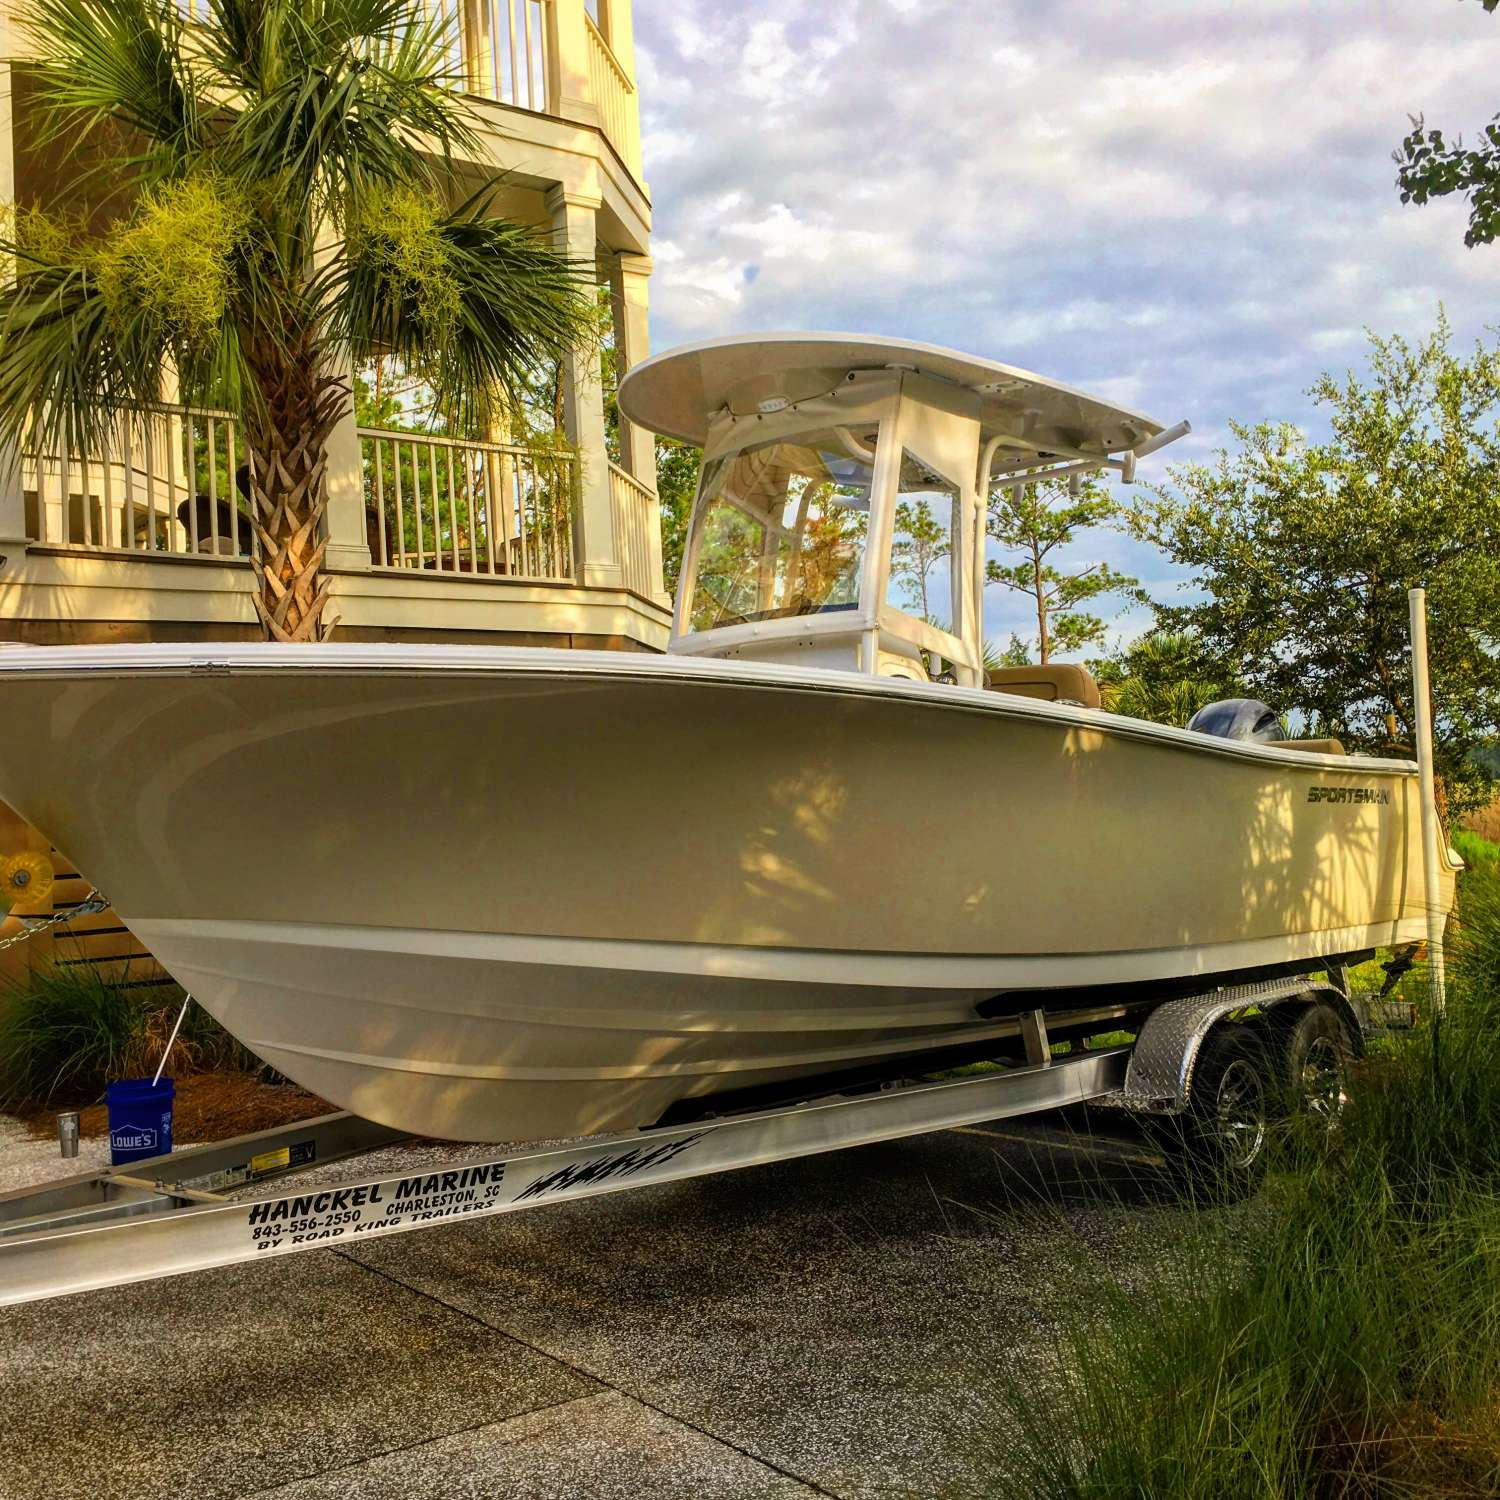 Title: Got Our New Sportsman Home - On board their Sportsman Heritage 231 Center Console - Location: Charleston, South Carolina. Participating in the Photo Contest #SportsmanJuly2017